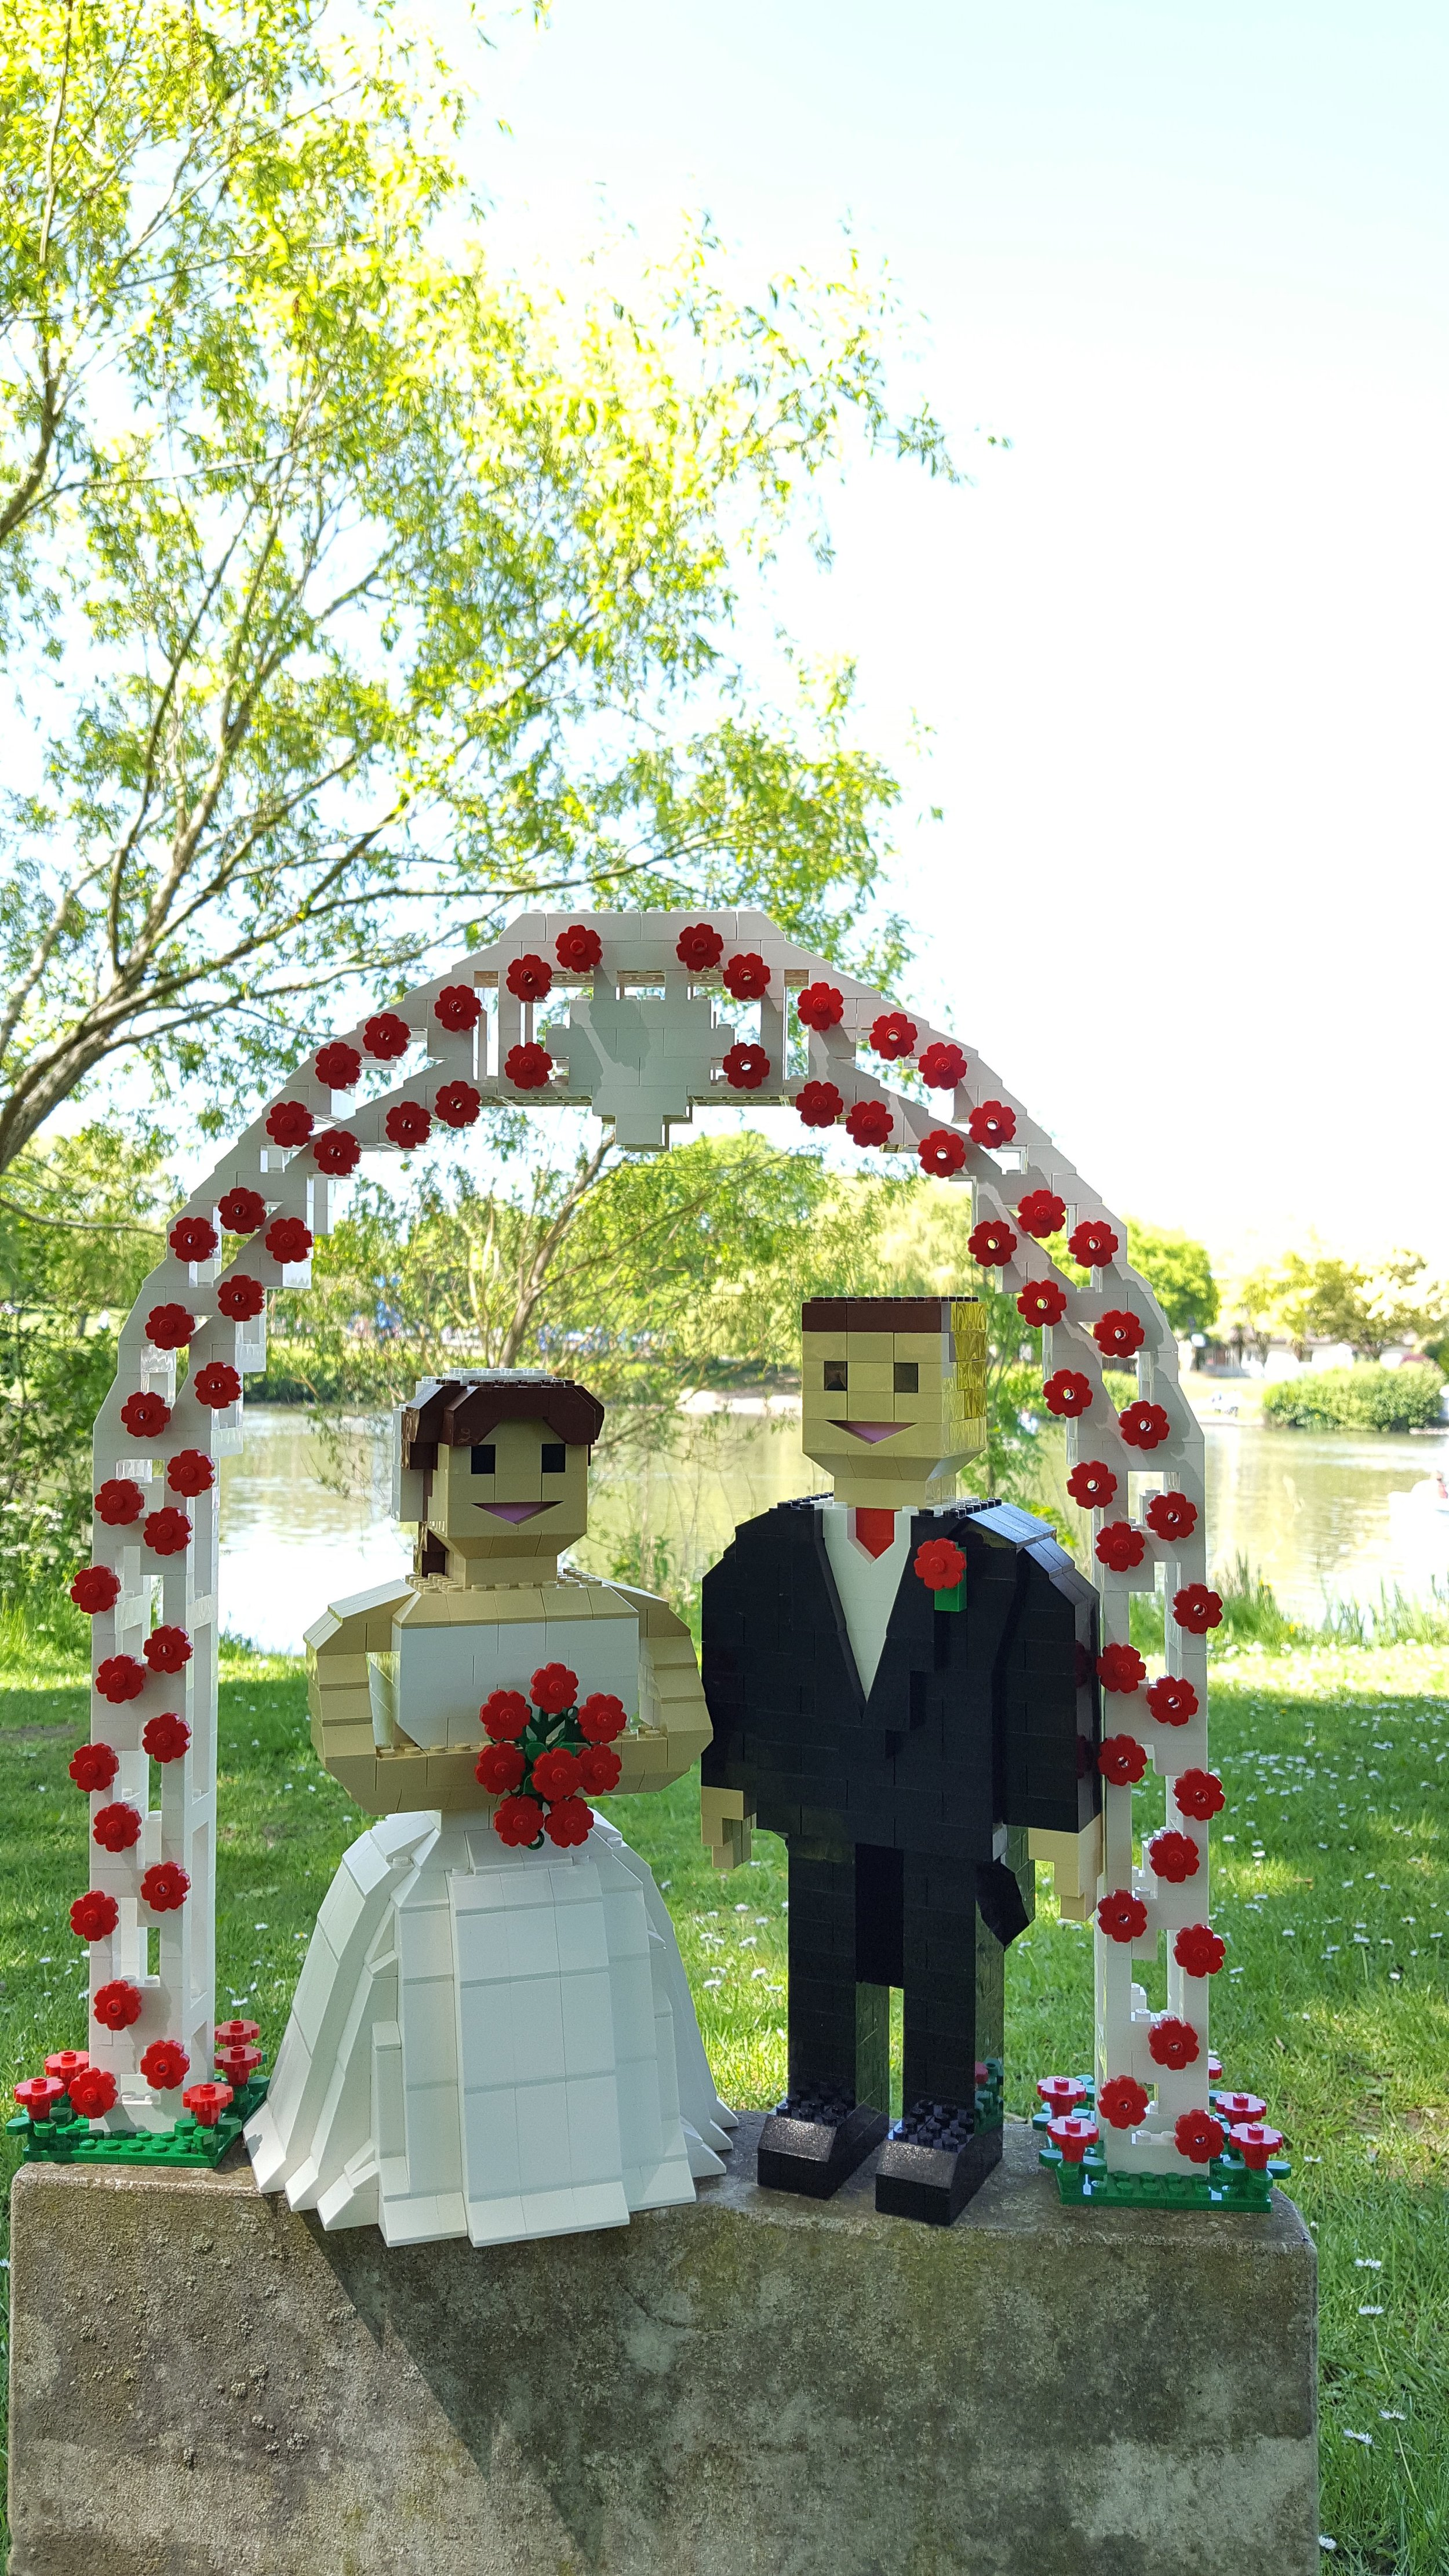 lego husband and wife for wedding hire.jpg